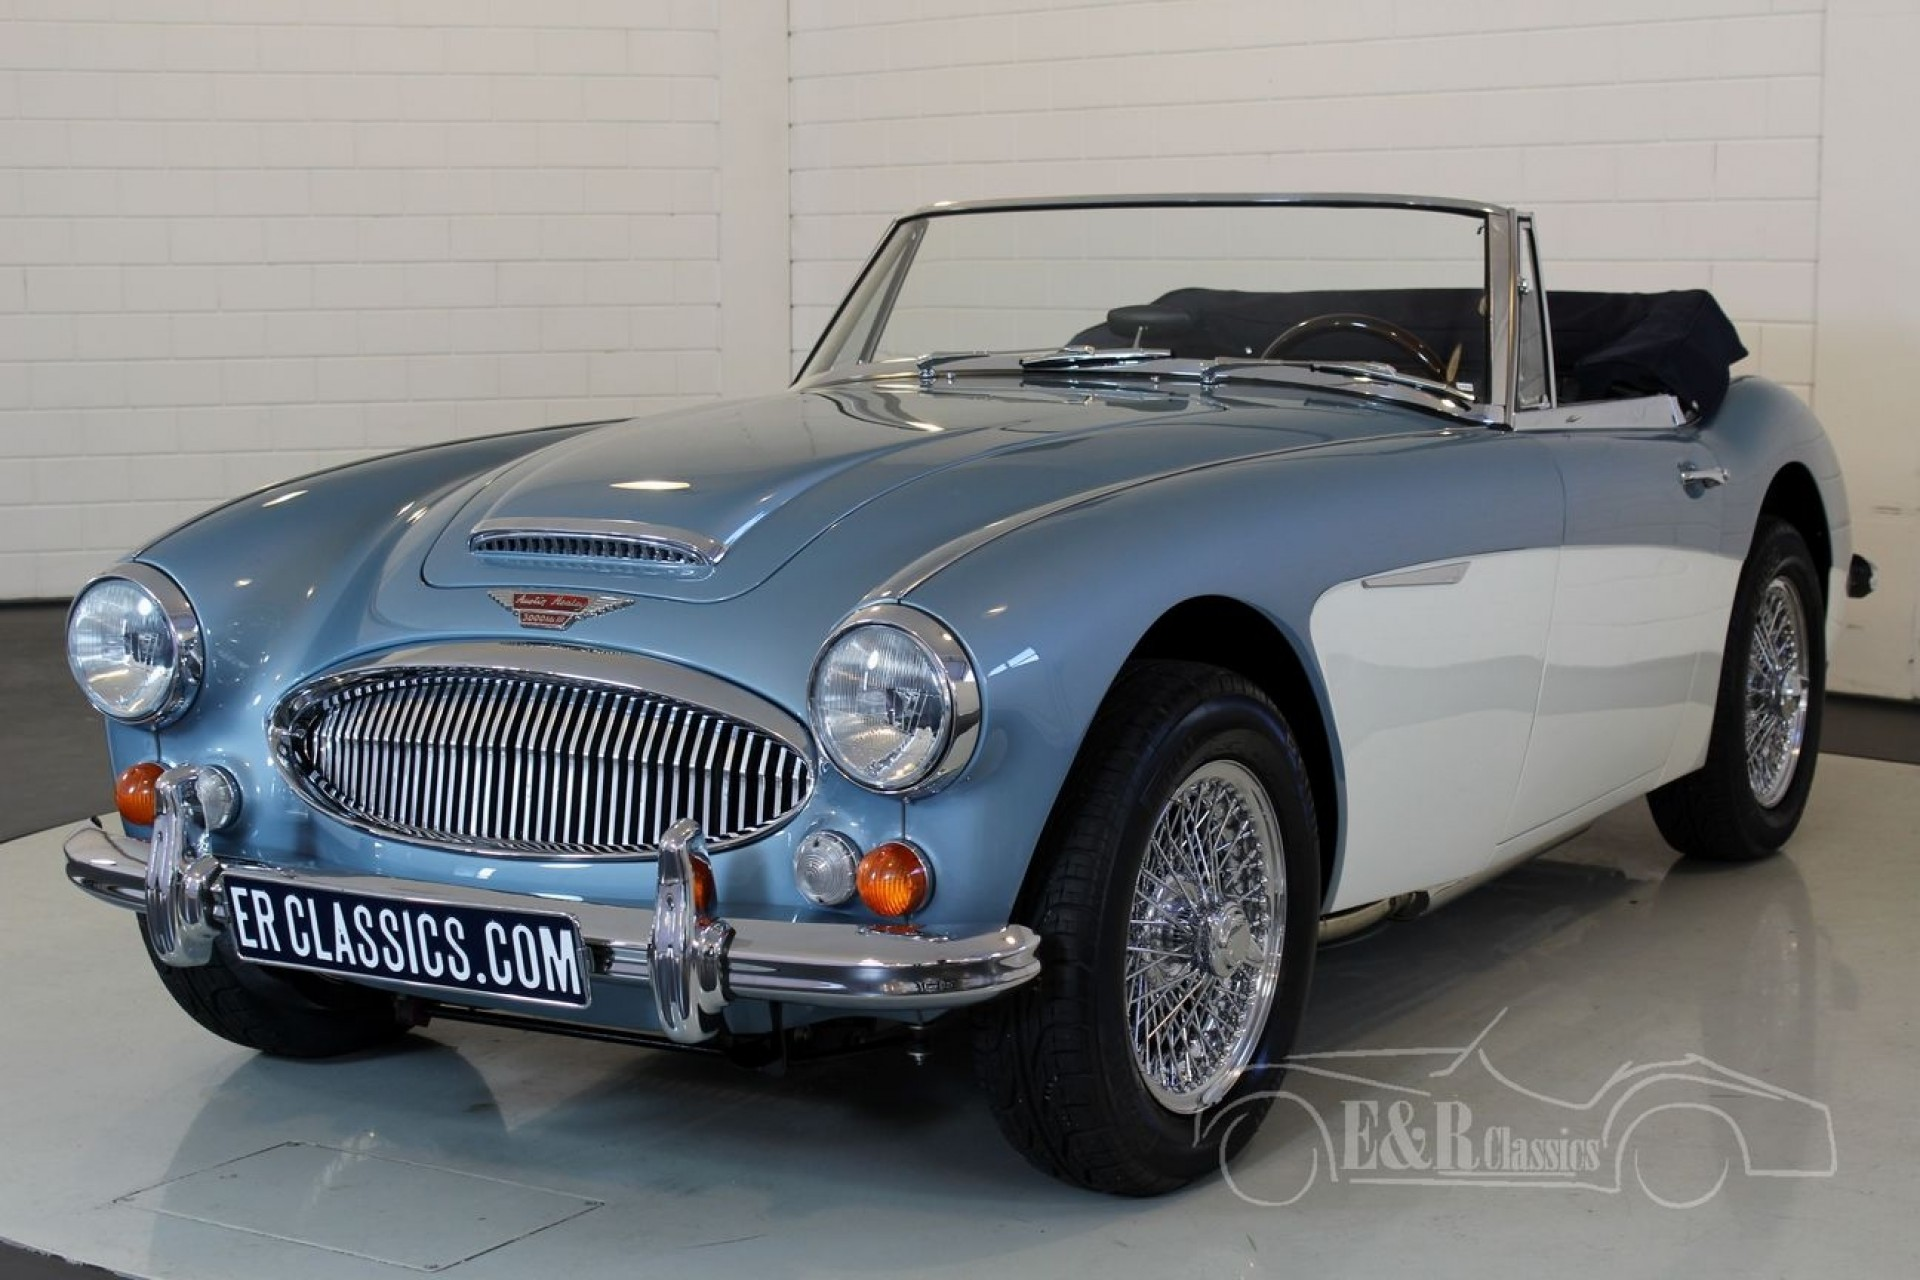 austin healey 3000 mk3 1965 for sale at erclassics. Black Bedroom Furniture Sets. Home Design Ideas